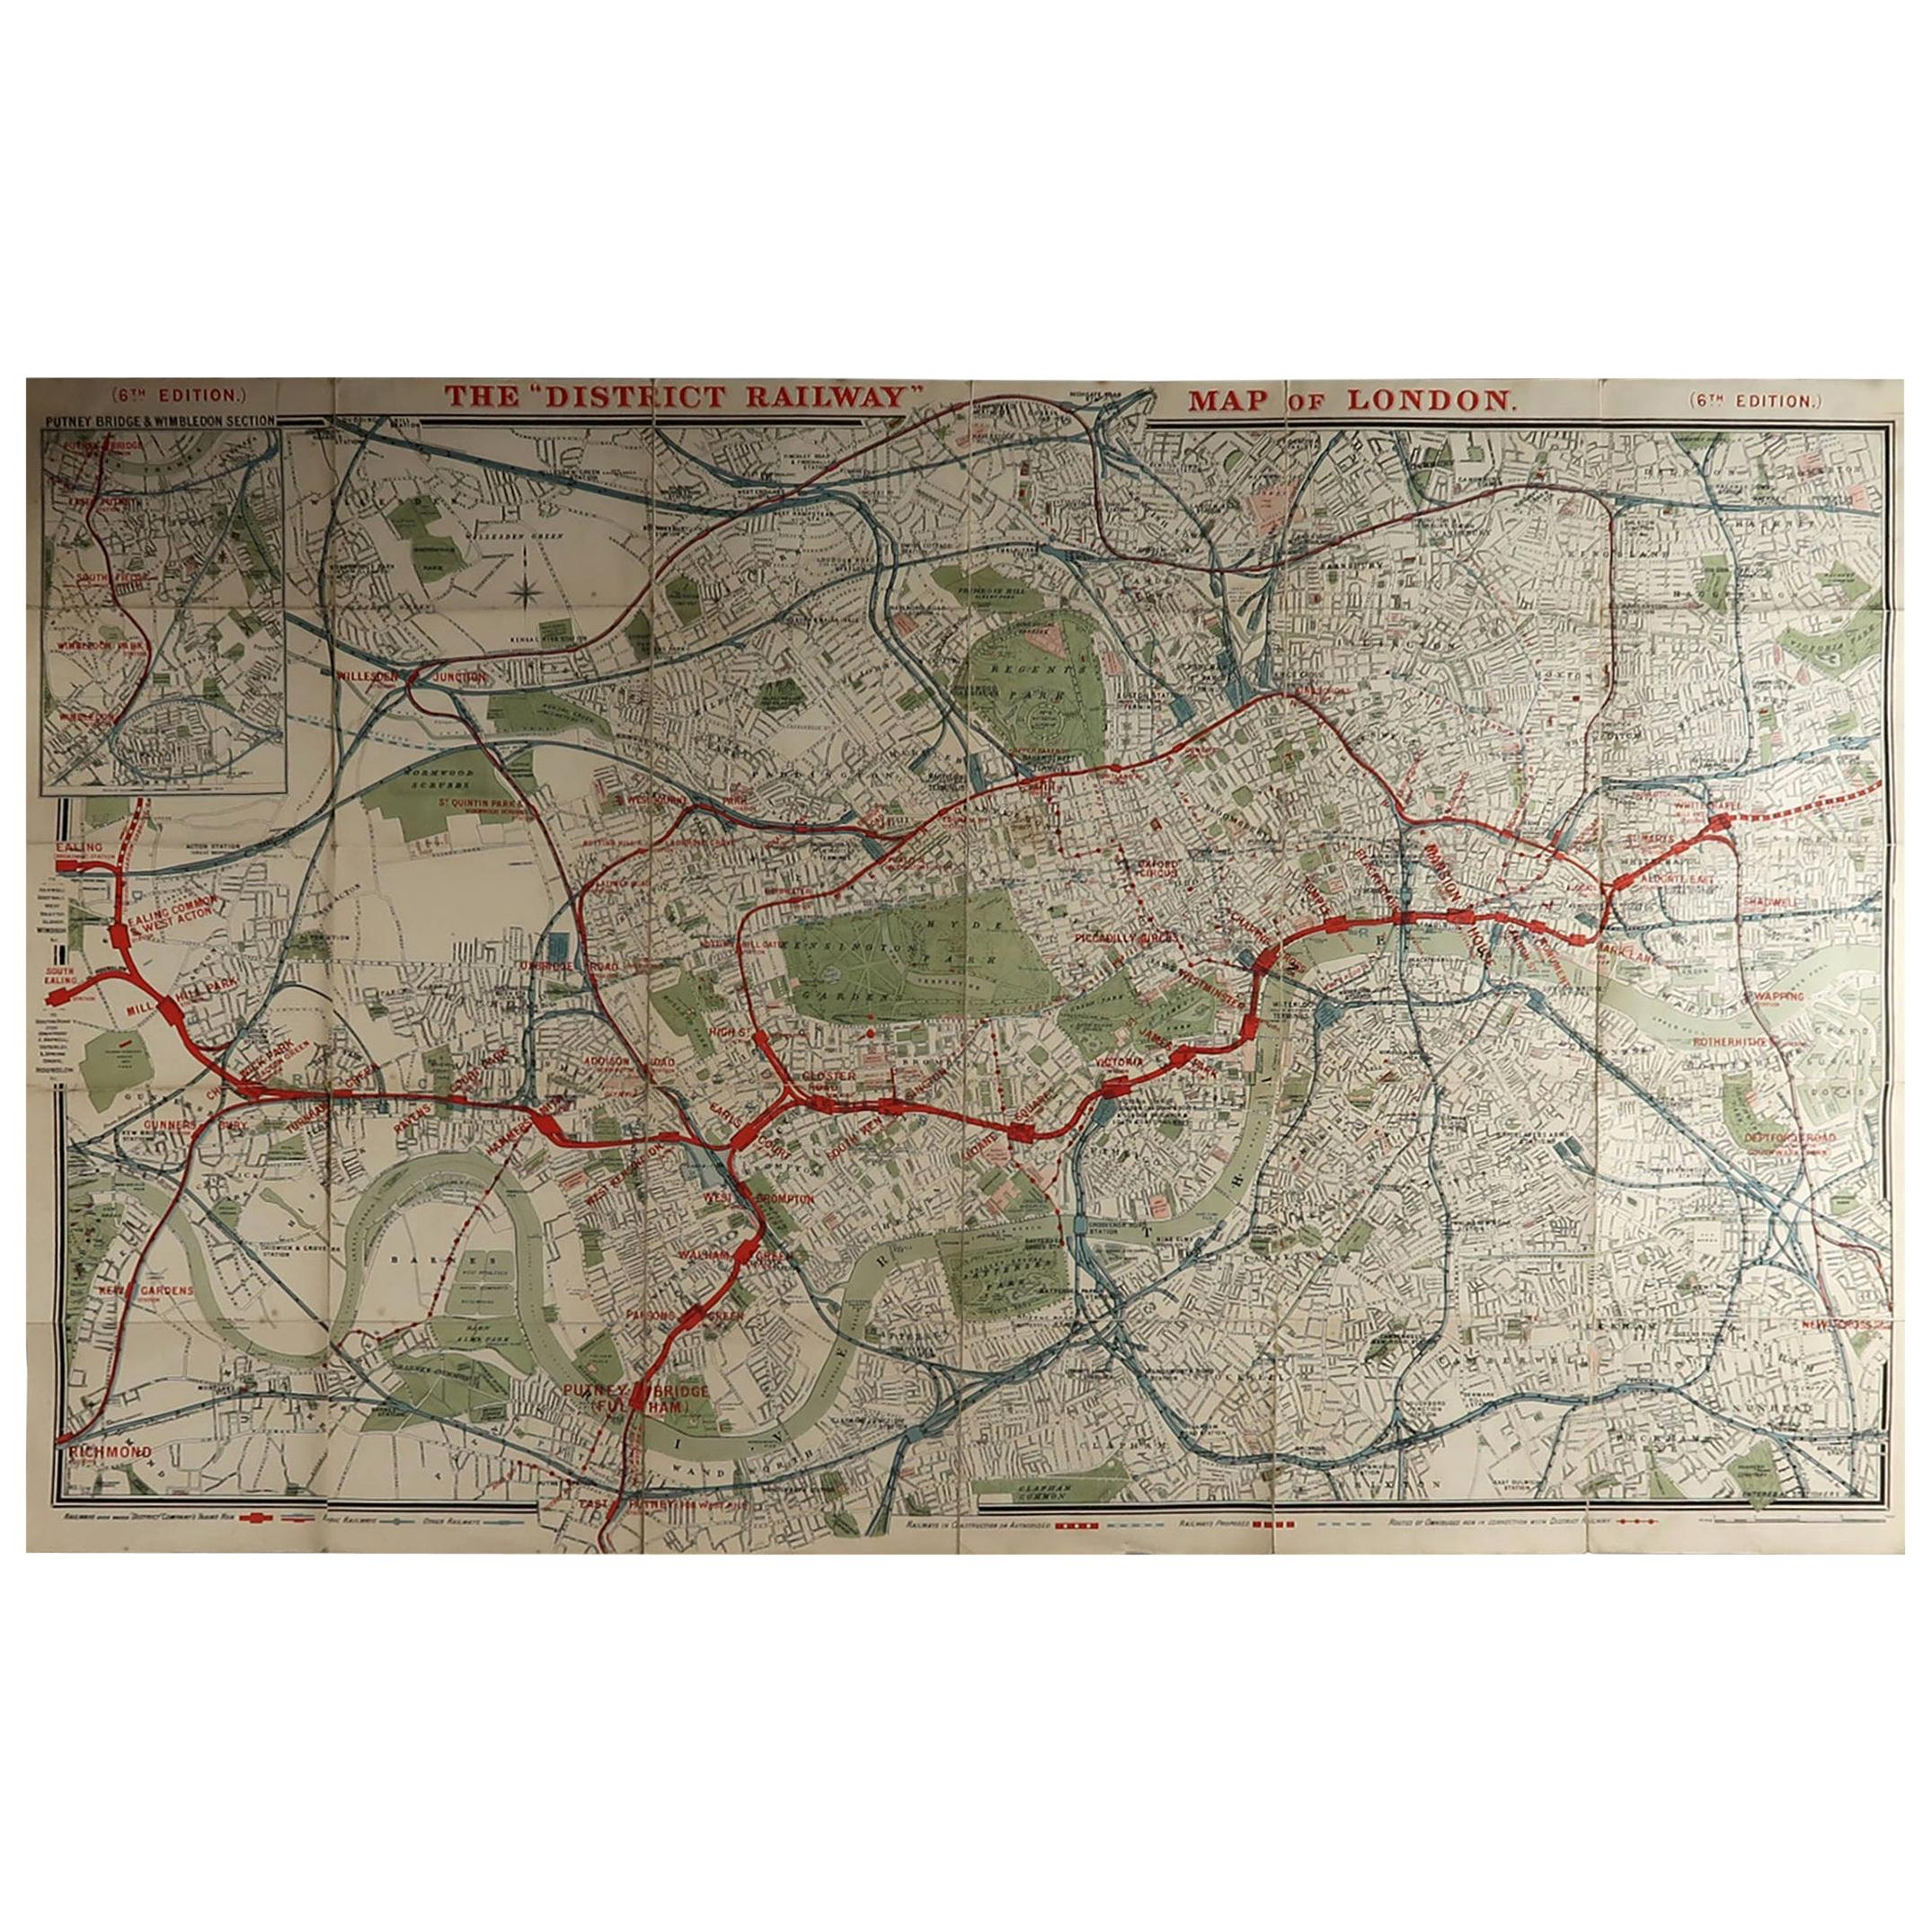 Large Original Antique Folding Map of London, UK, Dated 1898